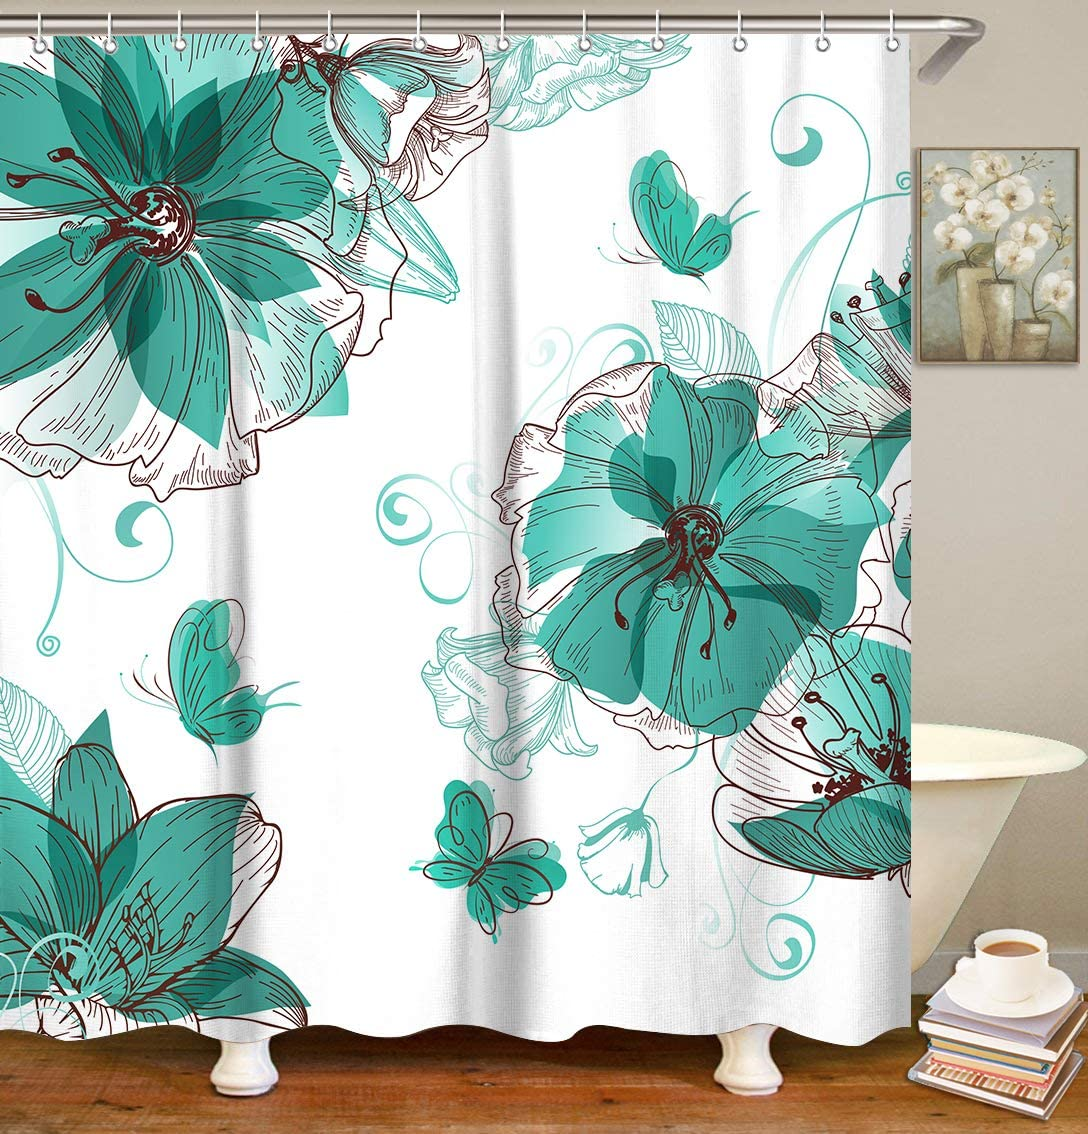 LIVILAN Lily Butterfly Shower Curtain Set with 12 Hooks, Watercolor Floral Fabric Bath Curtain Home Decorations Home Curtain Machine Washable, 72 by 72 Inches